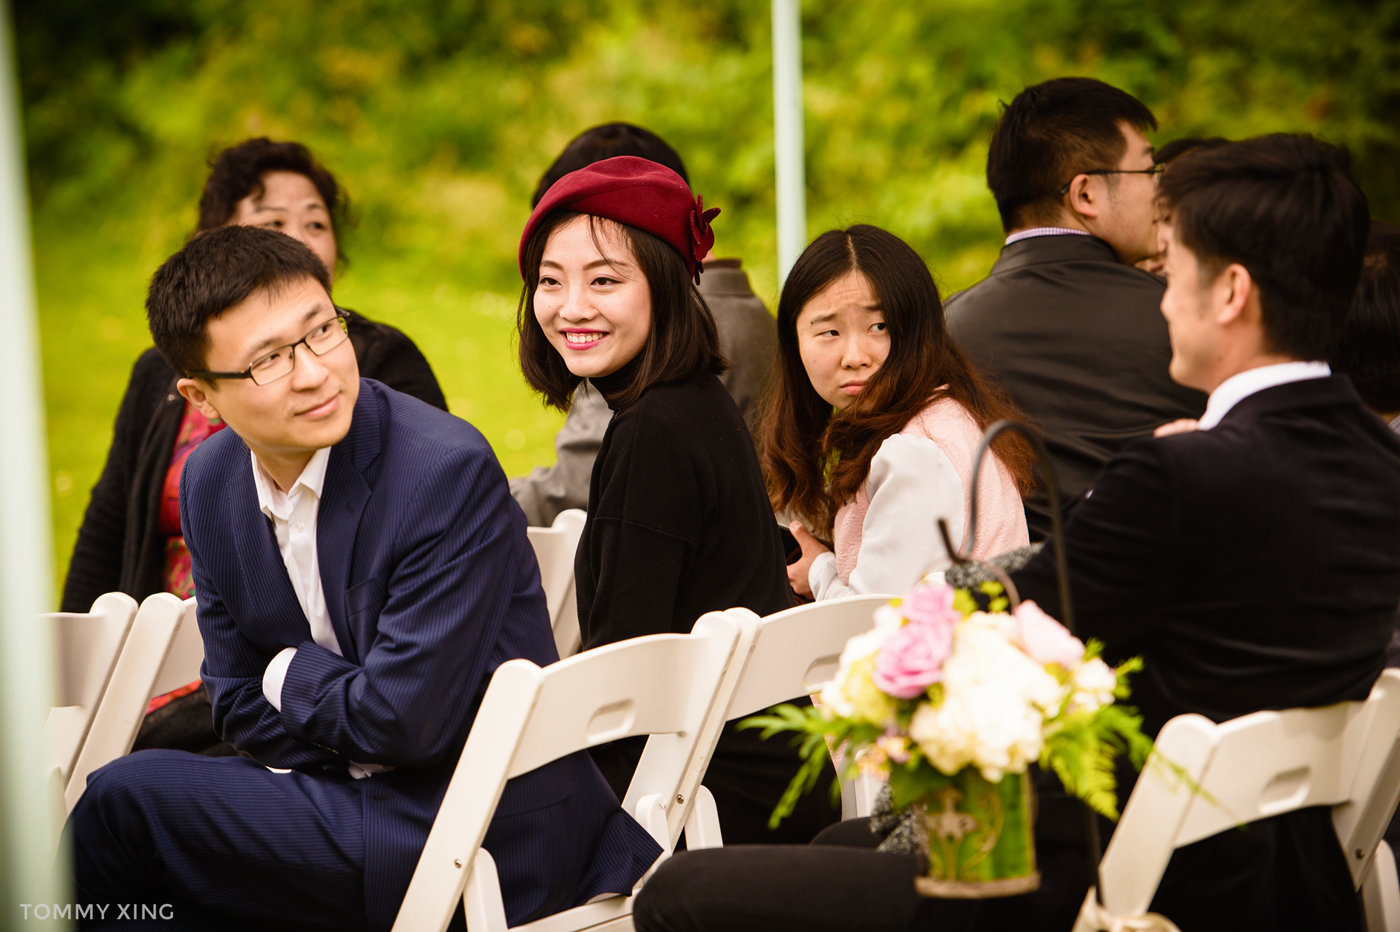 Seattle Wedding and pre wedding Los Angeles Tommy Xing Photography 西雅图洛杉矶旧金山婚礼婚纱照摄影师 061.jpg